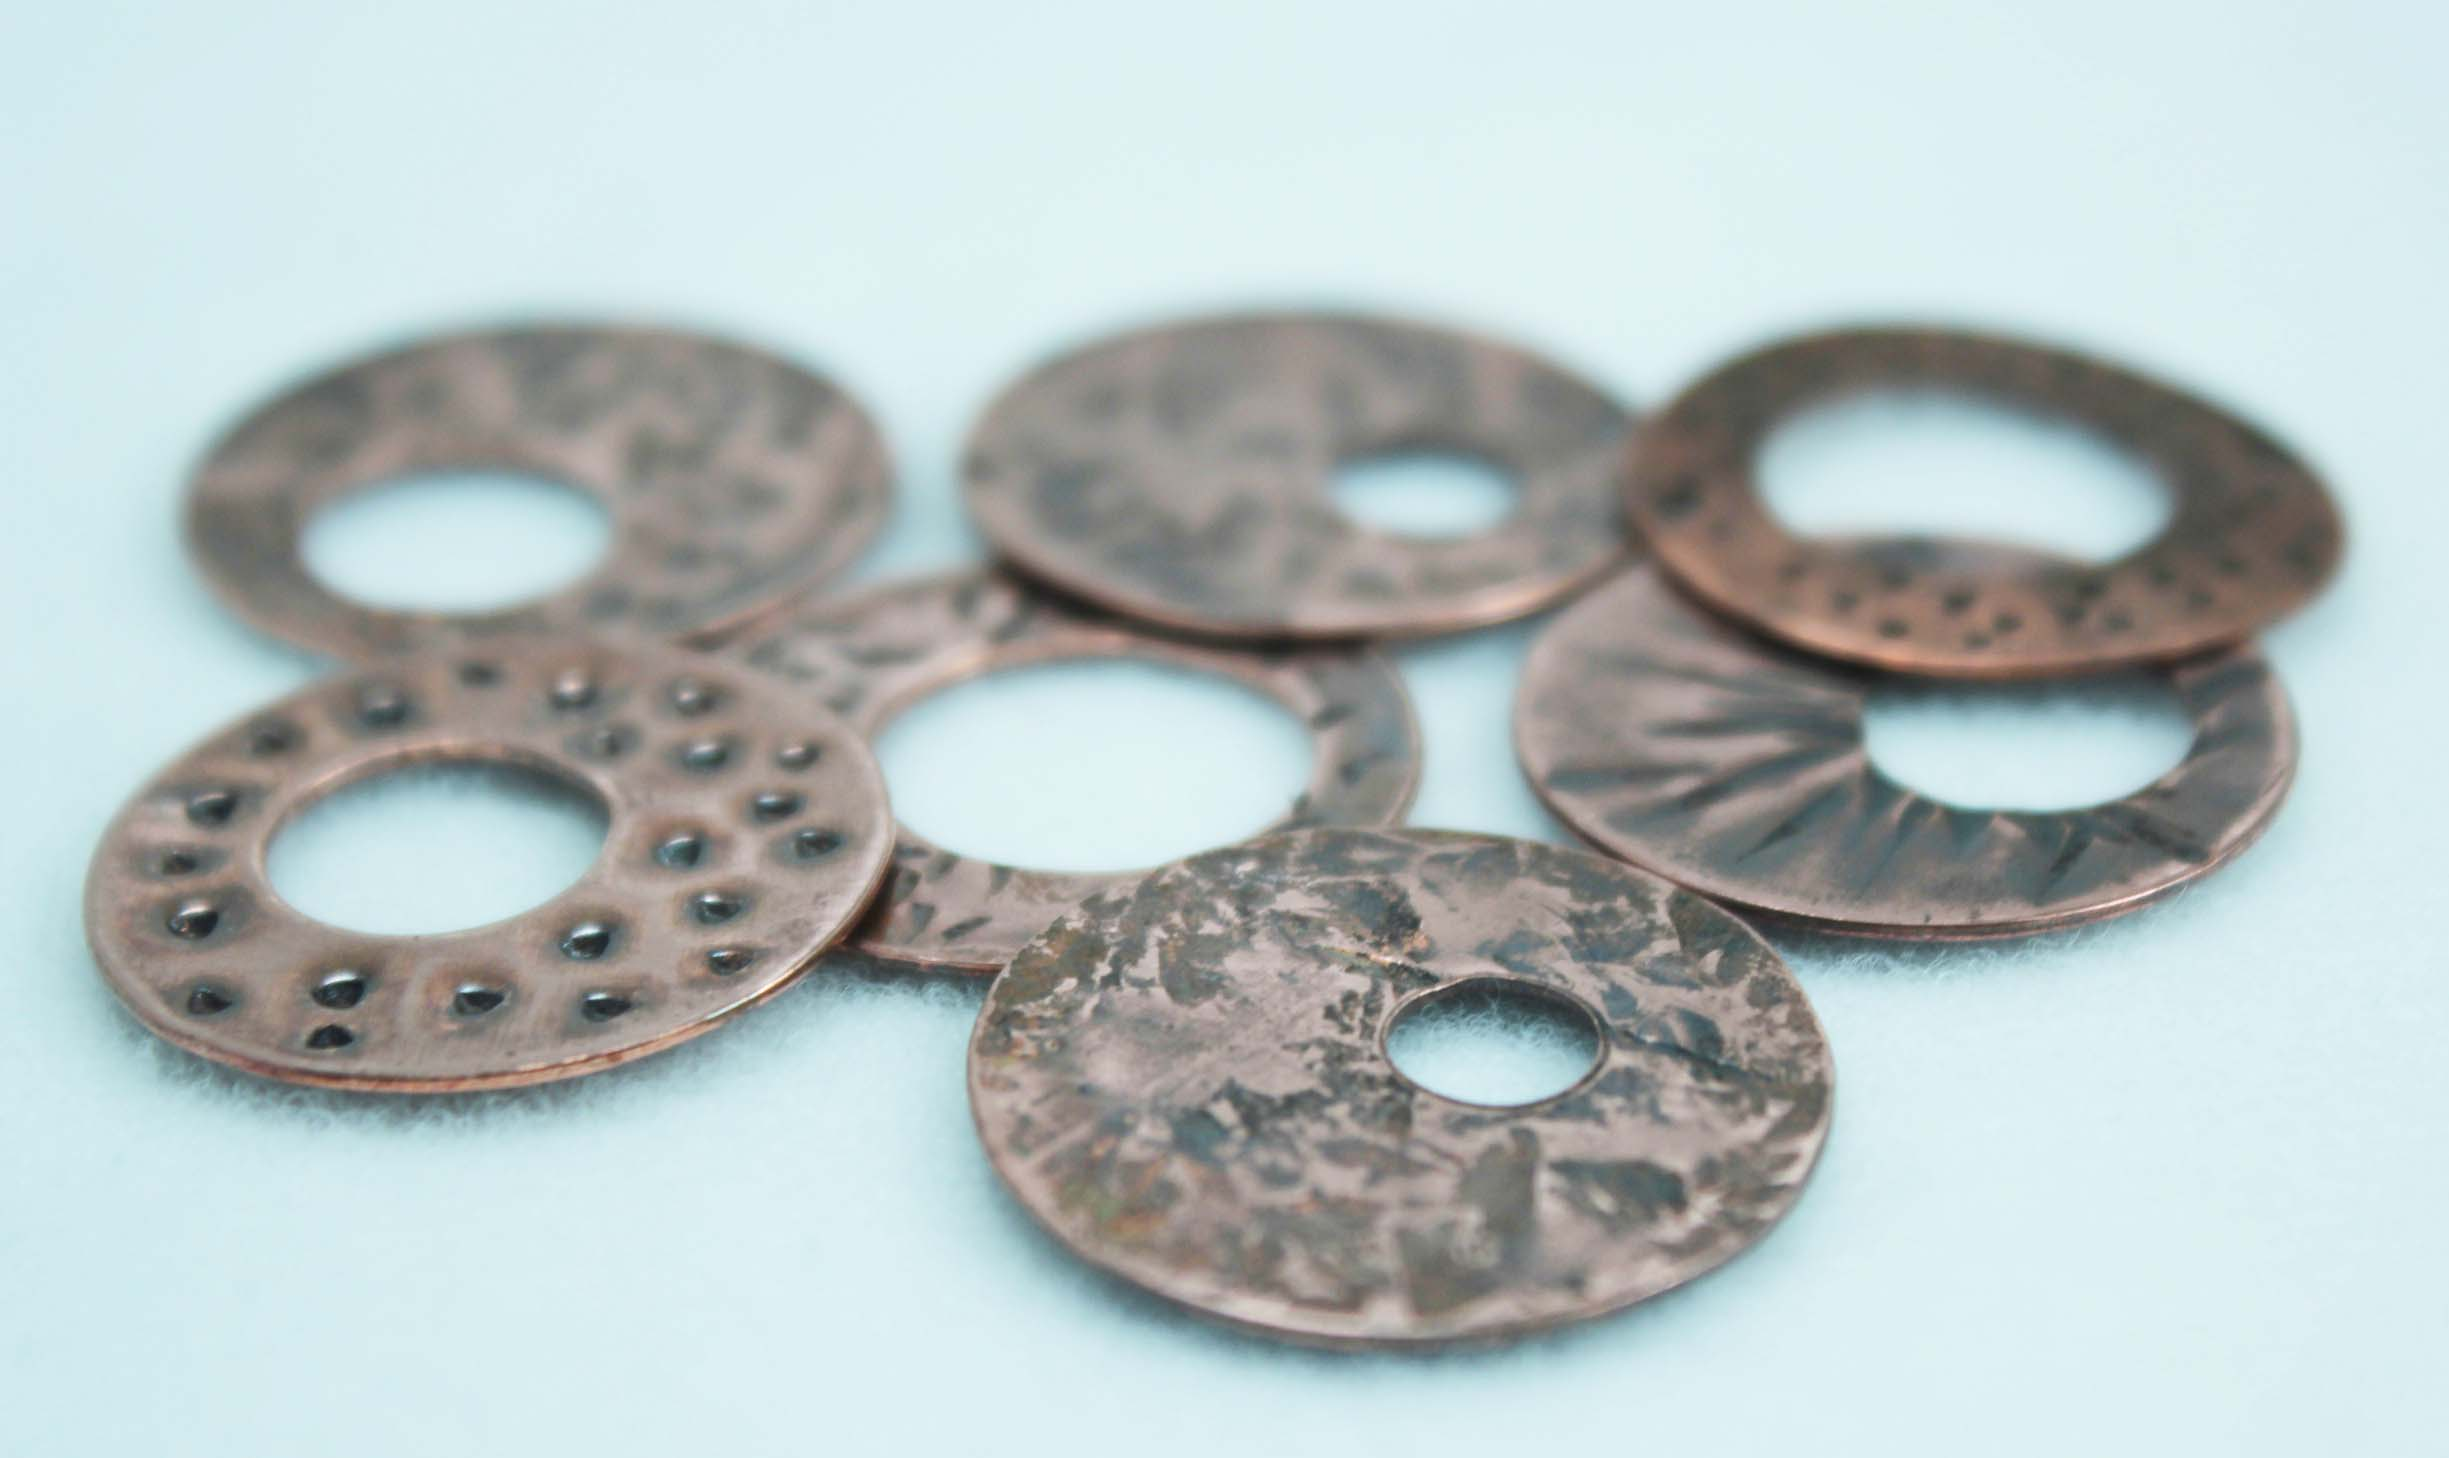 Selection of textured copper discs